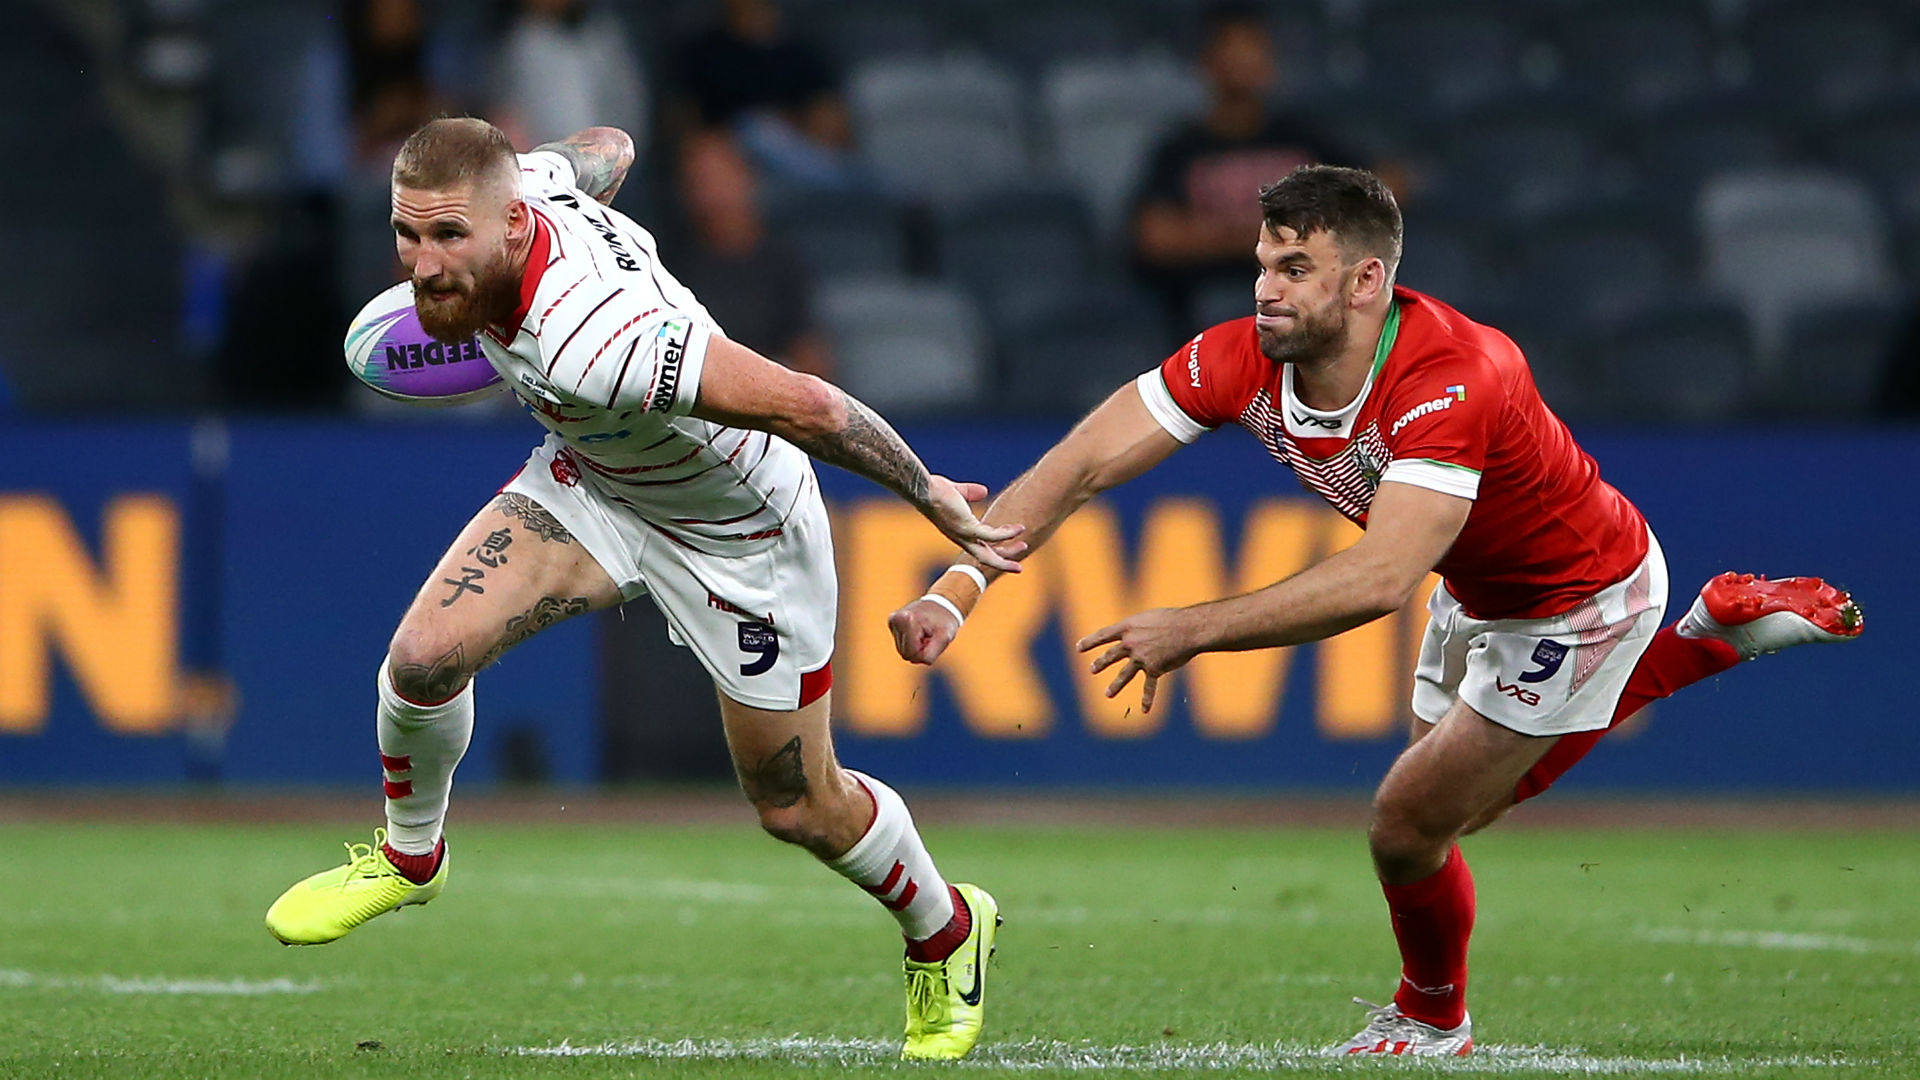 Sam Tomkins was in scintillating form as England began their World Cup Nines campaign with a routine 25-4 triumph over Wales in Sydney.